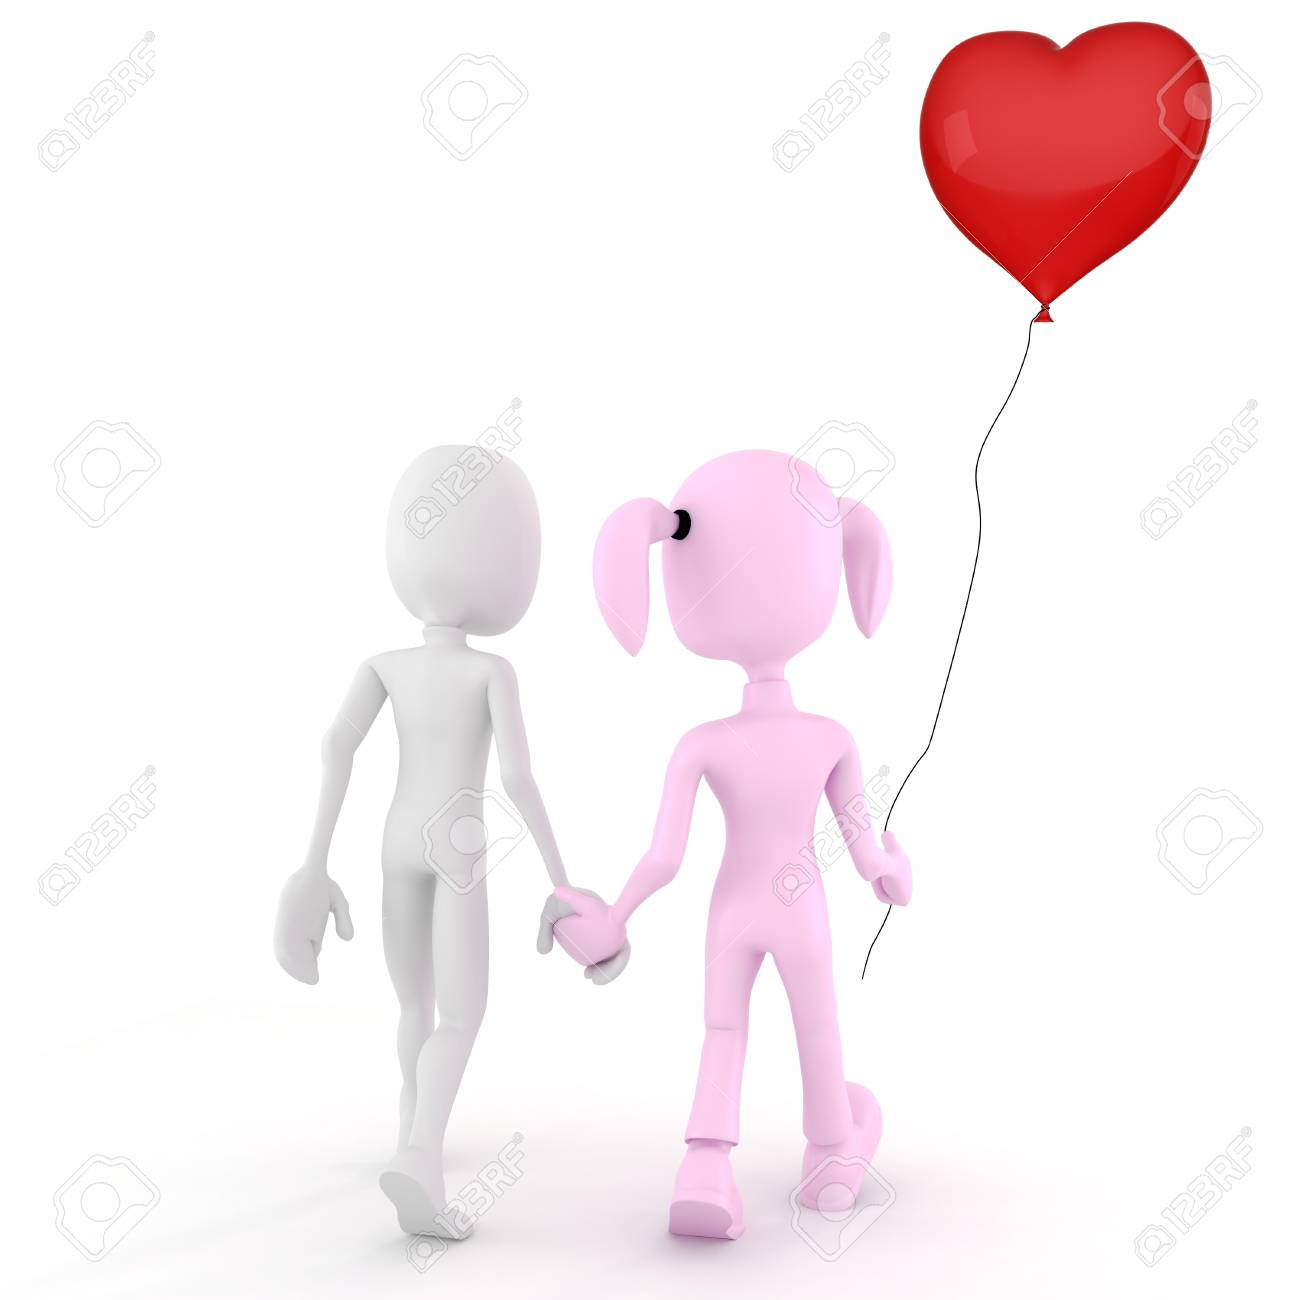 3d man  Valentine concept Love is in the air! Stock Photo - 11771216